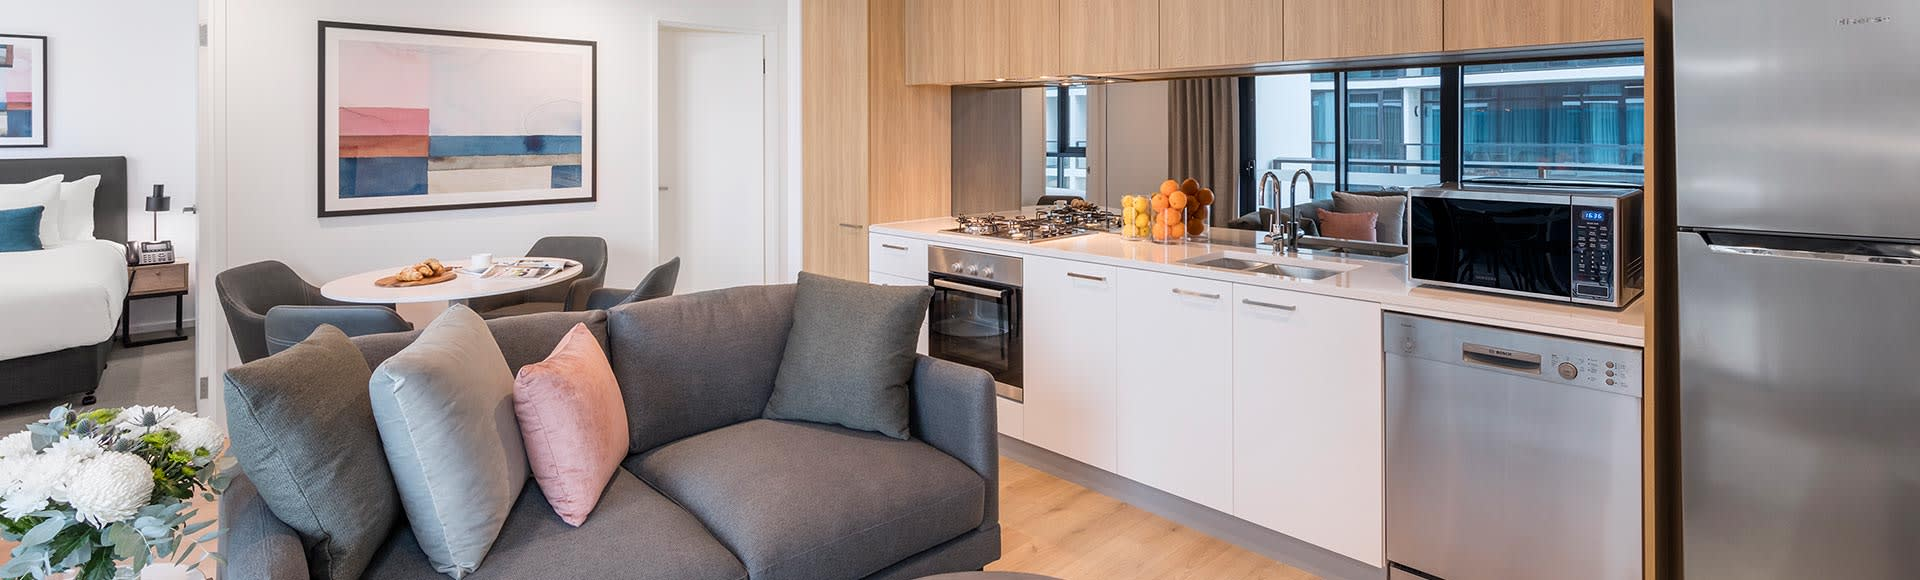 Living room and fully equipped kitchen at Avani Adelaide